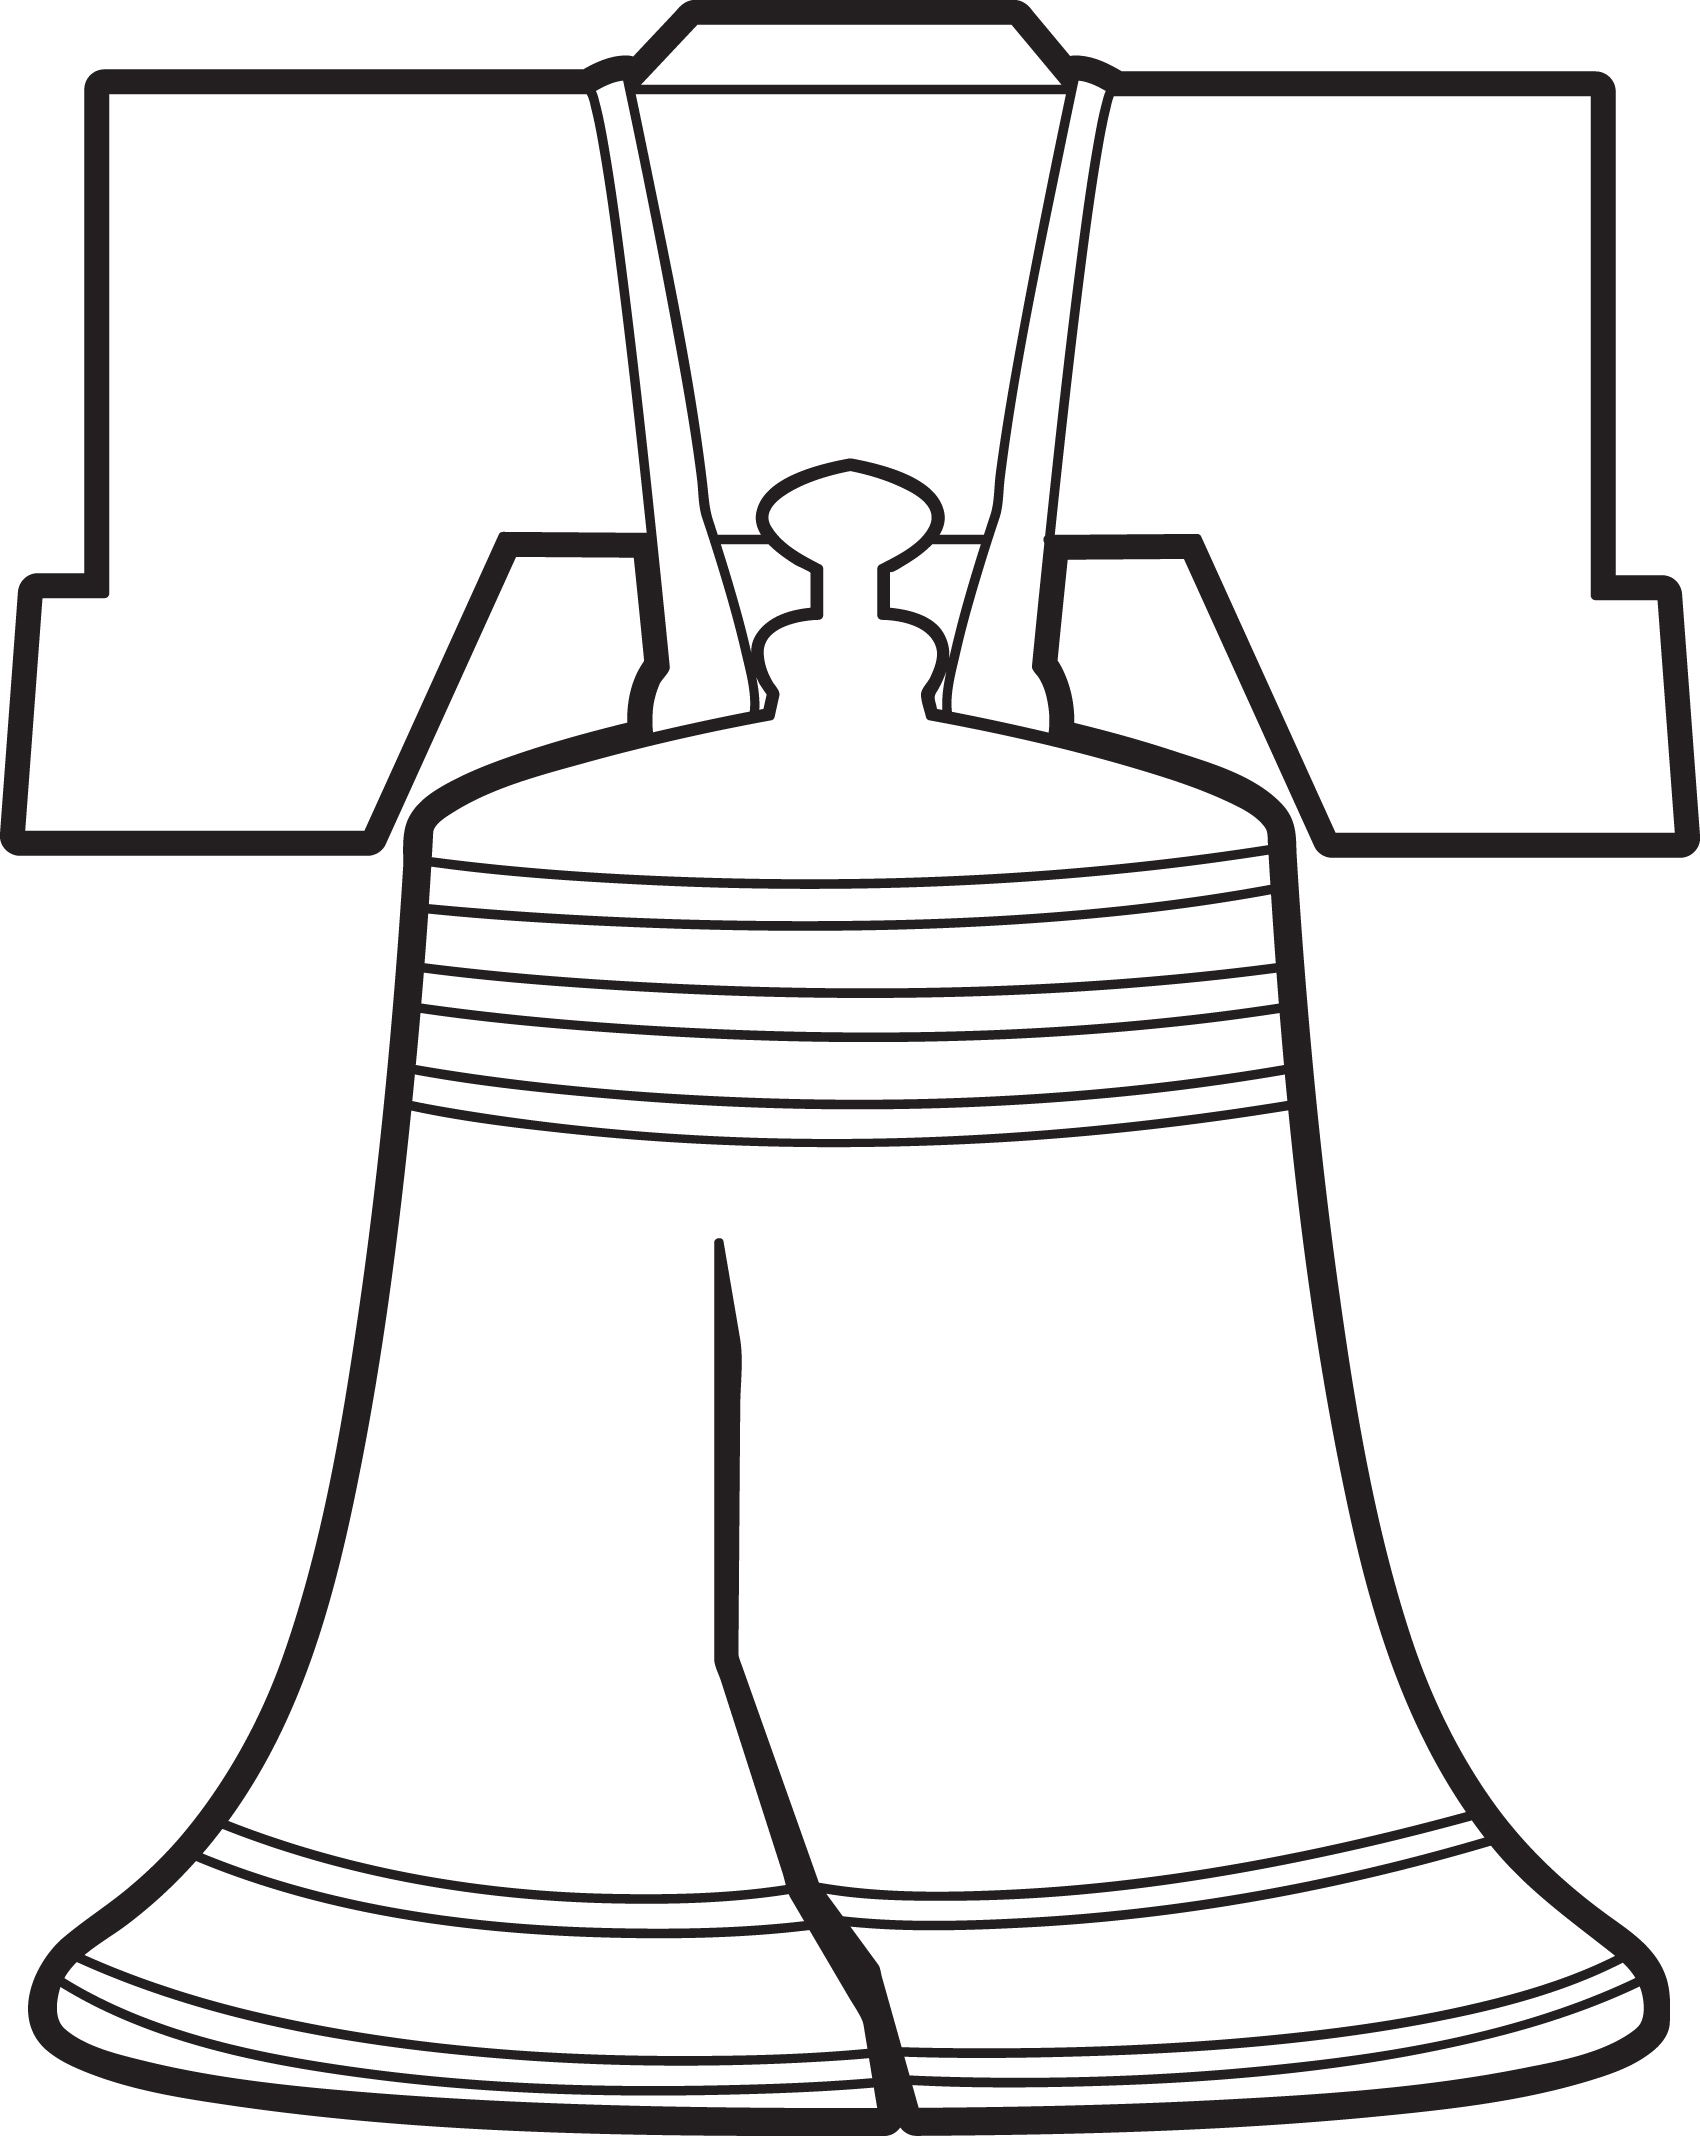 Print 4529 Liberty Bell Coloring Page Jpg Mpm School Supplies